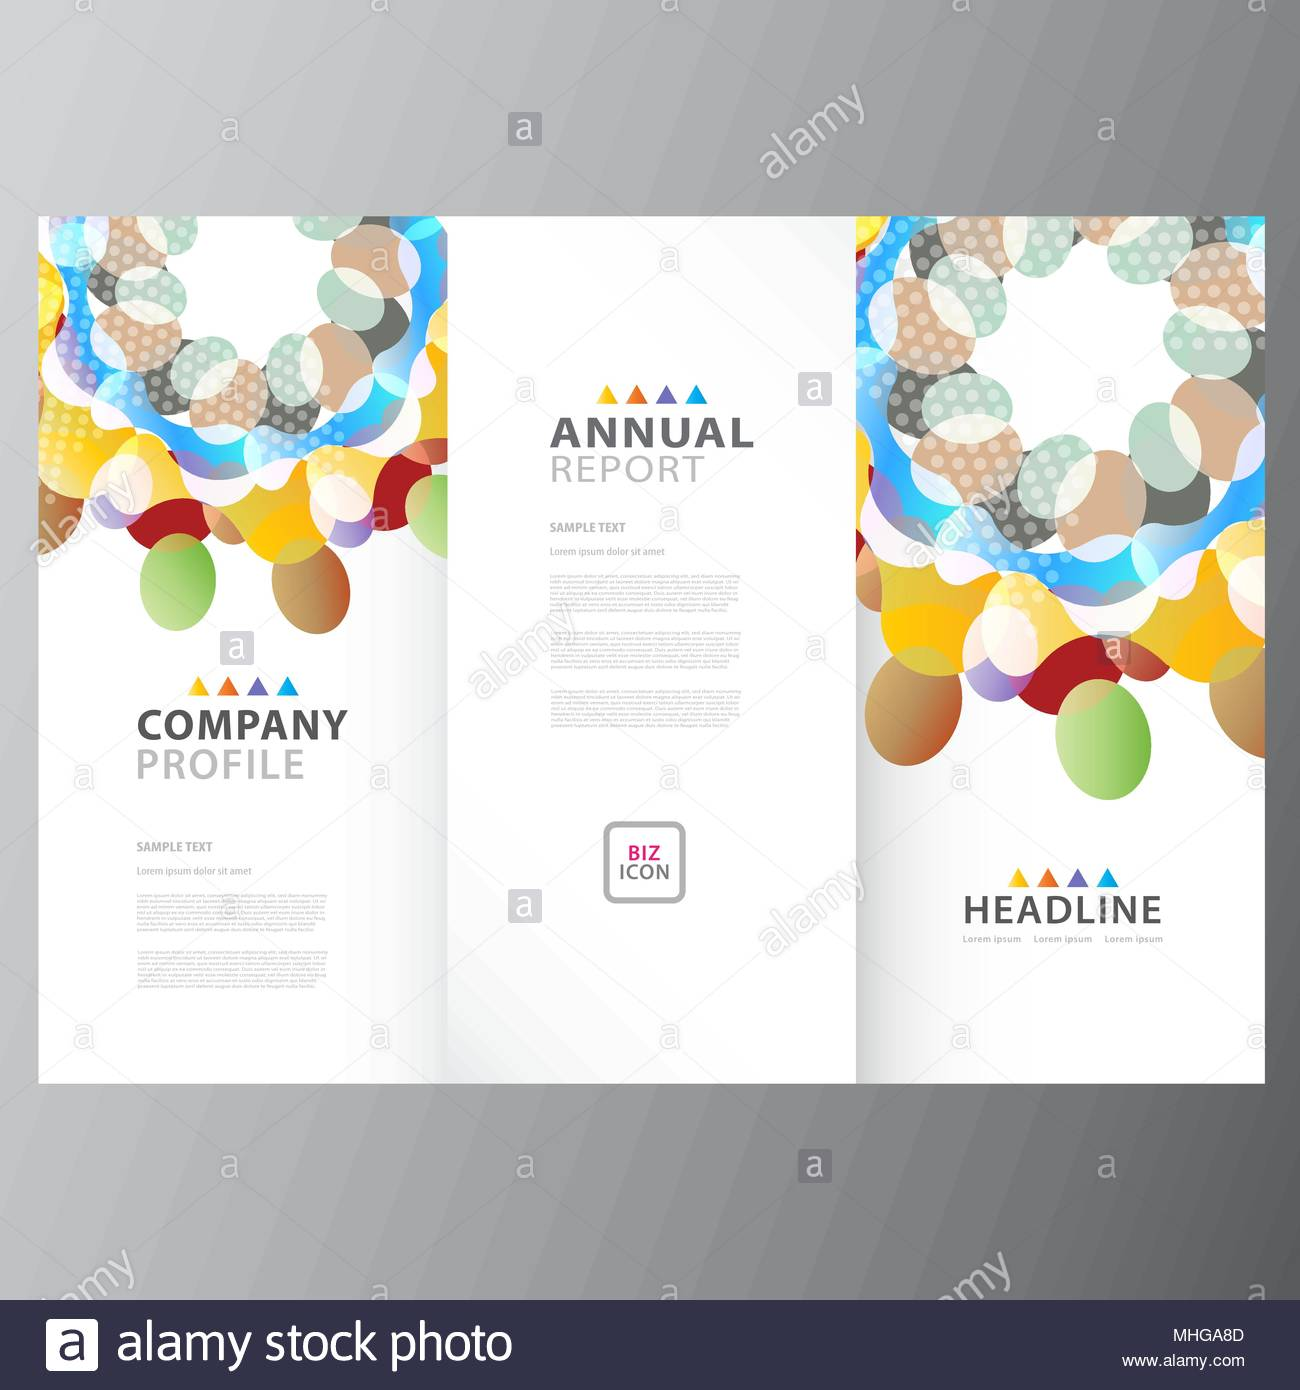 Annual Colorful Business Report Template Design Layout Stock Vector